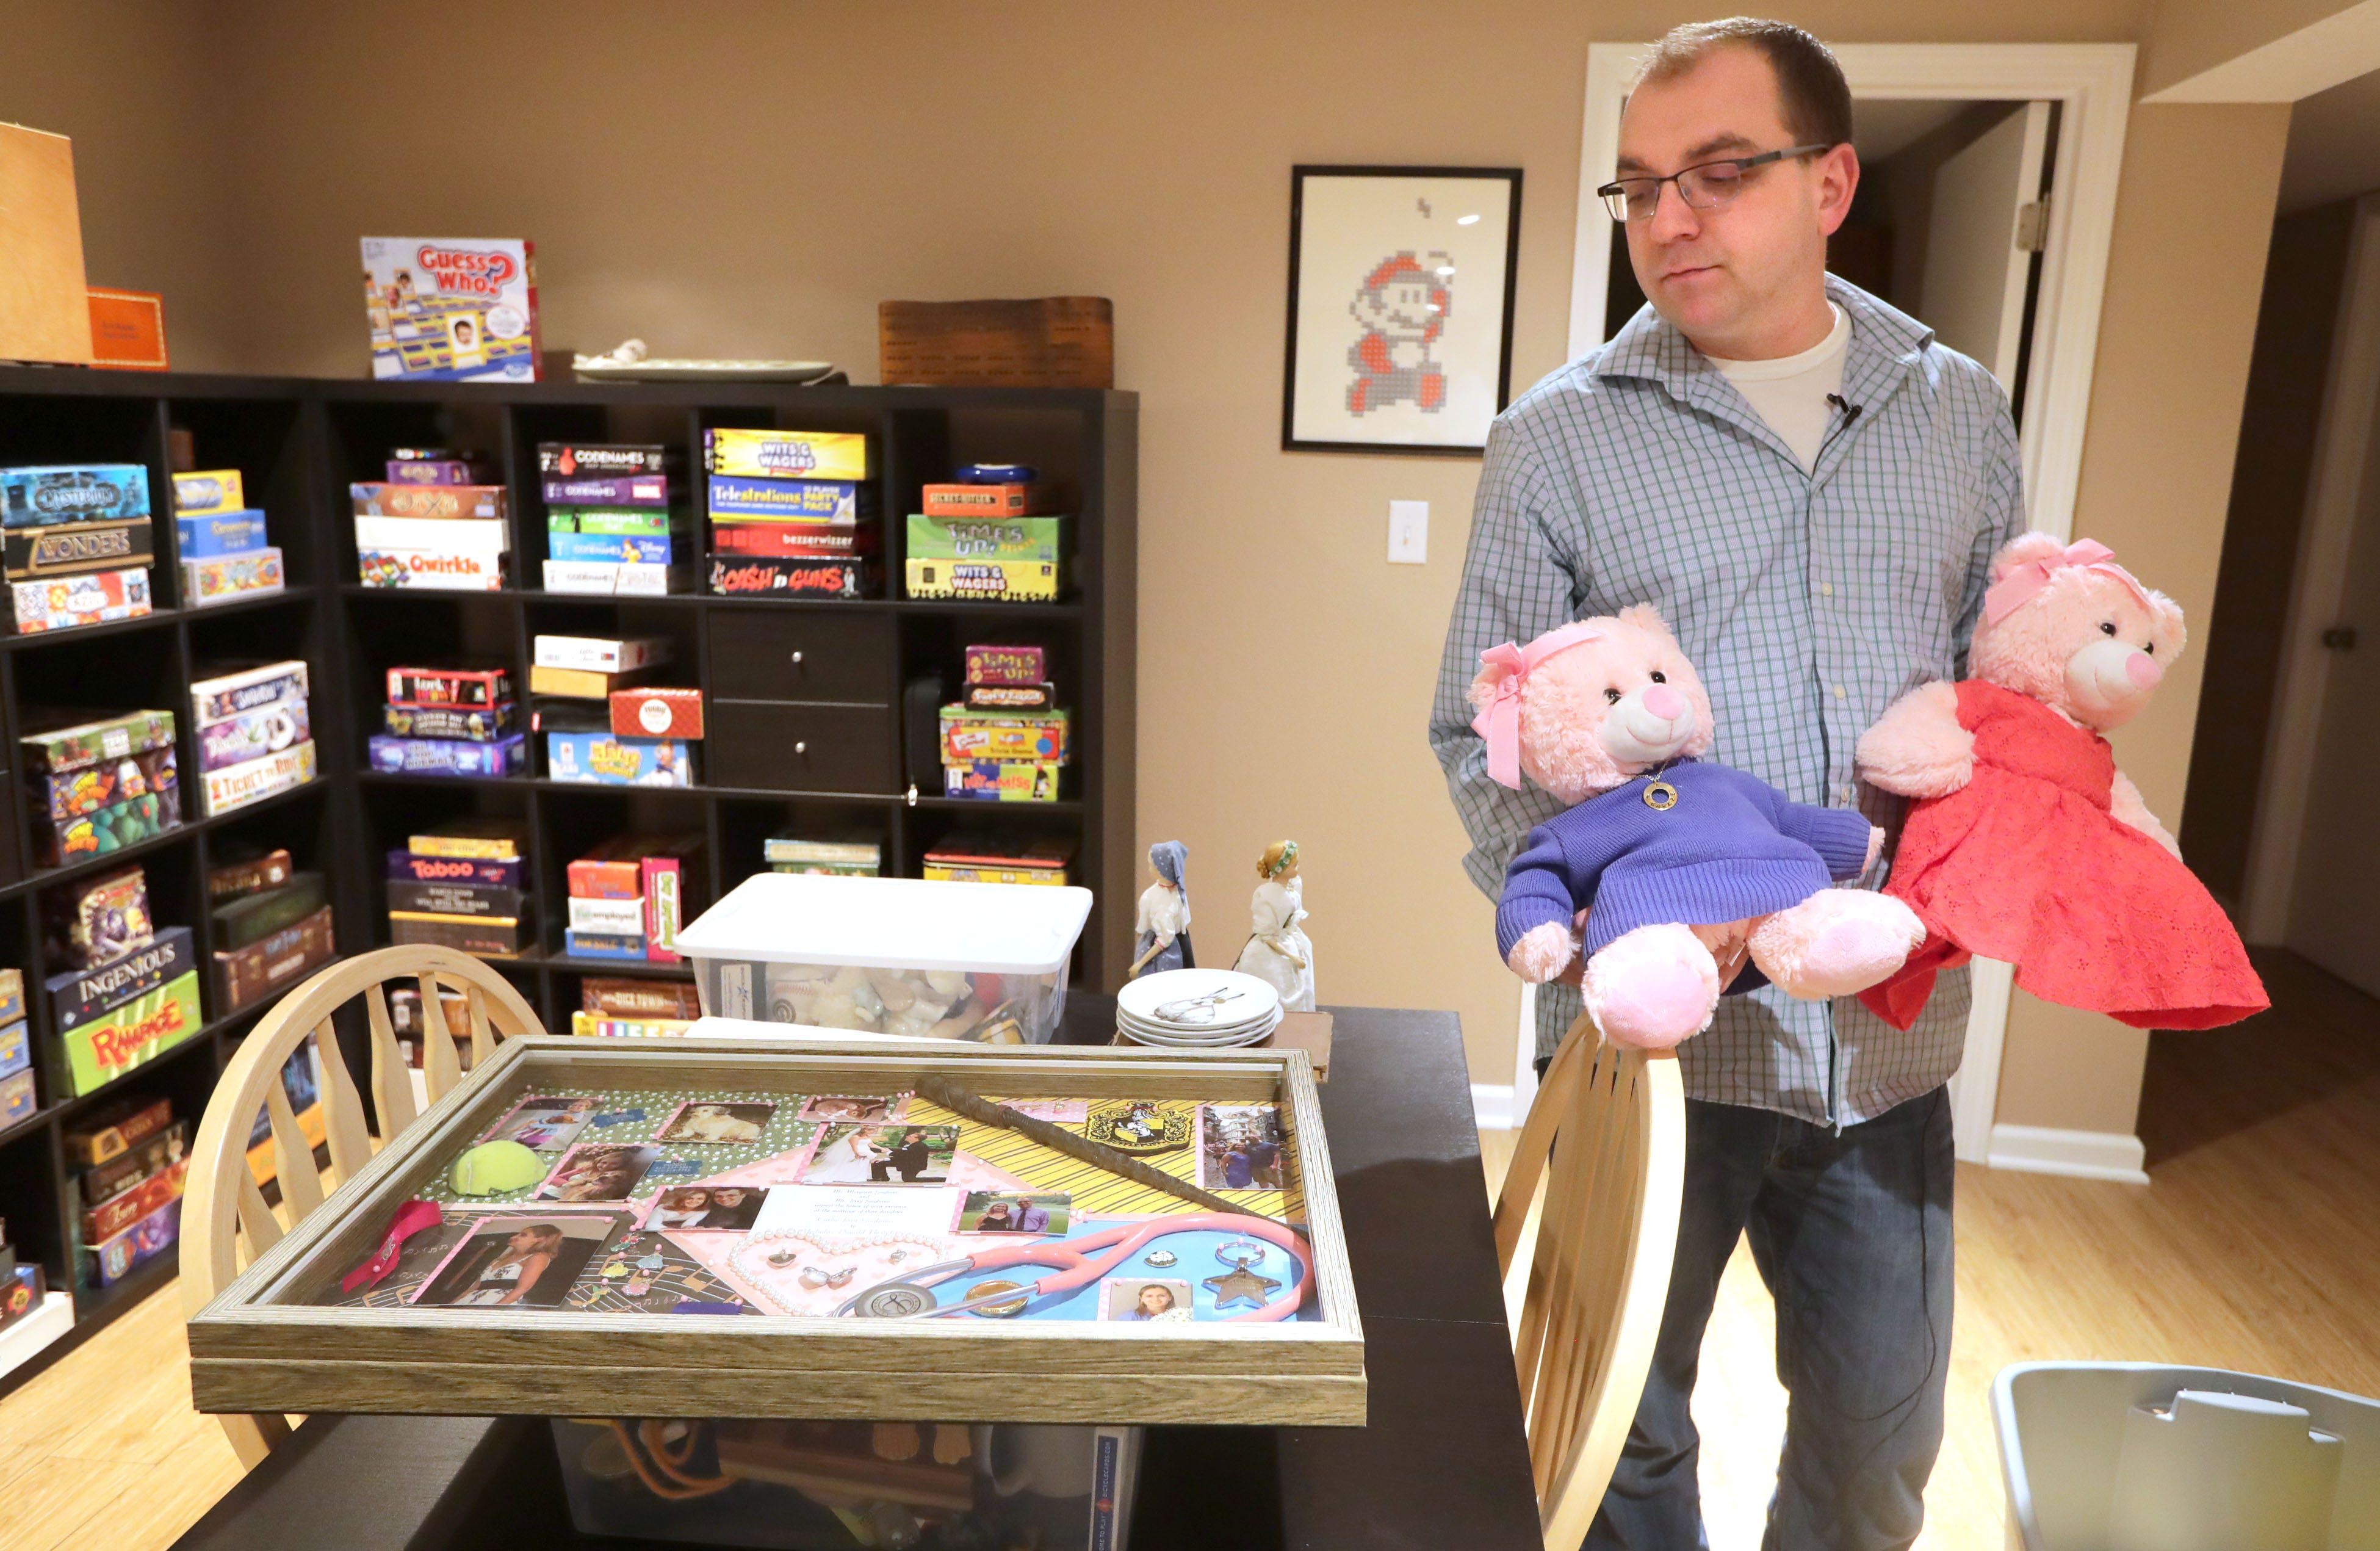 Nick Beaudin, husband of Carlie Beaudin, the Froedtert nurse practitioner who was beaten to death in Froedtert Hospital'sparking garage, holds a couple of teddy bears with outfits made from the clothes of his wife as he looks at a framed collection of photos and memorabilia of Carlie. Nick had several of Carlie outfits made to fit the teddy bears he called Carlie Bears and gave them to family and friends. He's pictured in his home in Greendale on Wednesday, Jan. 8, 2020.   Photo by Mike De Sisti / Milwaukee Journal Sentinel